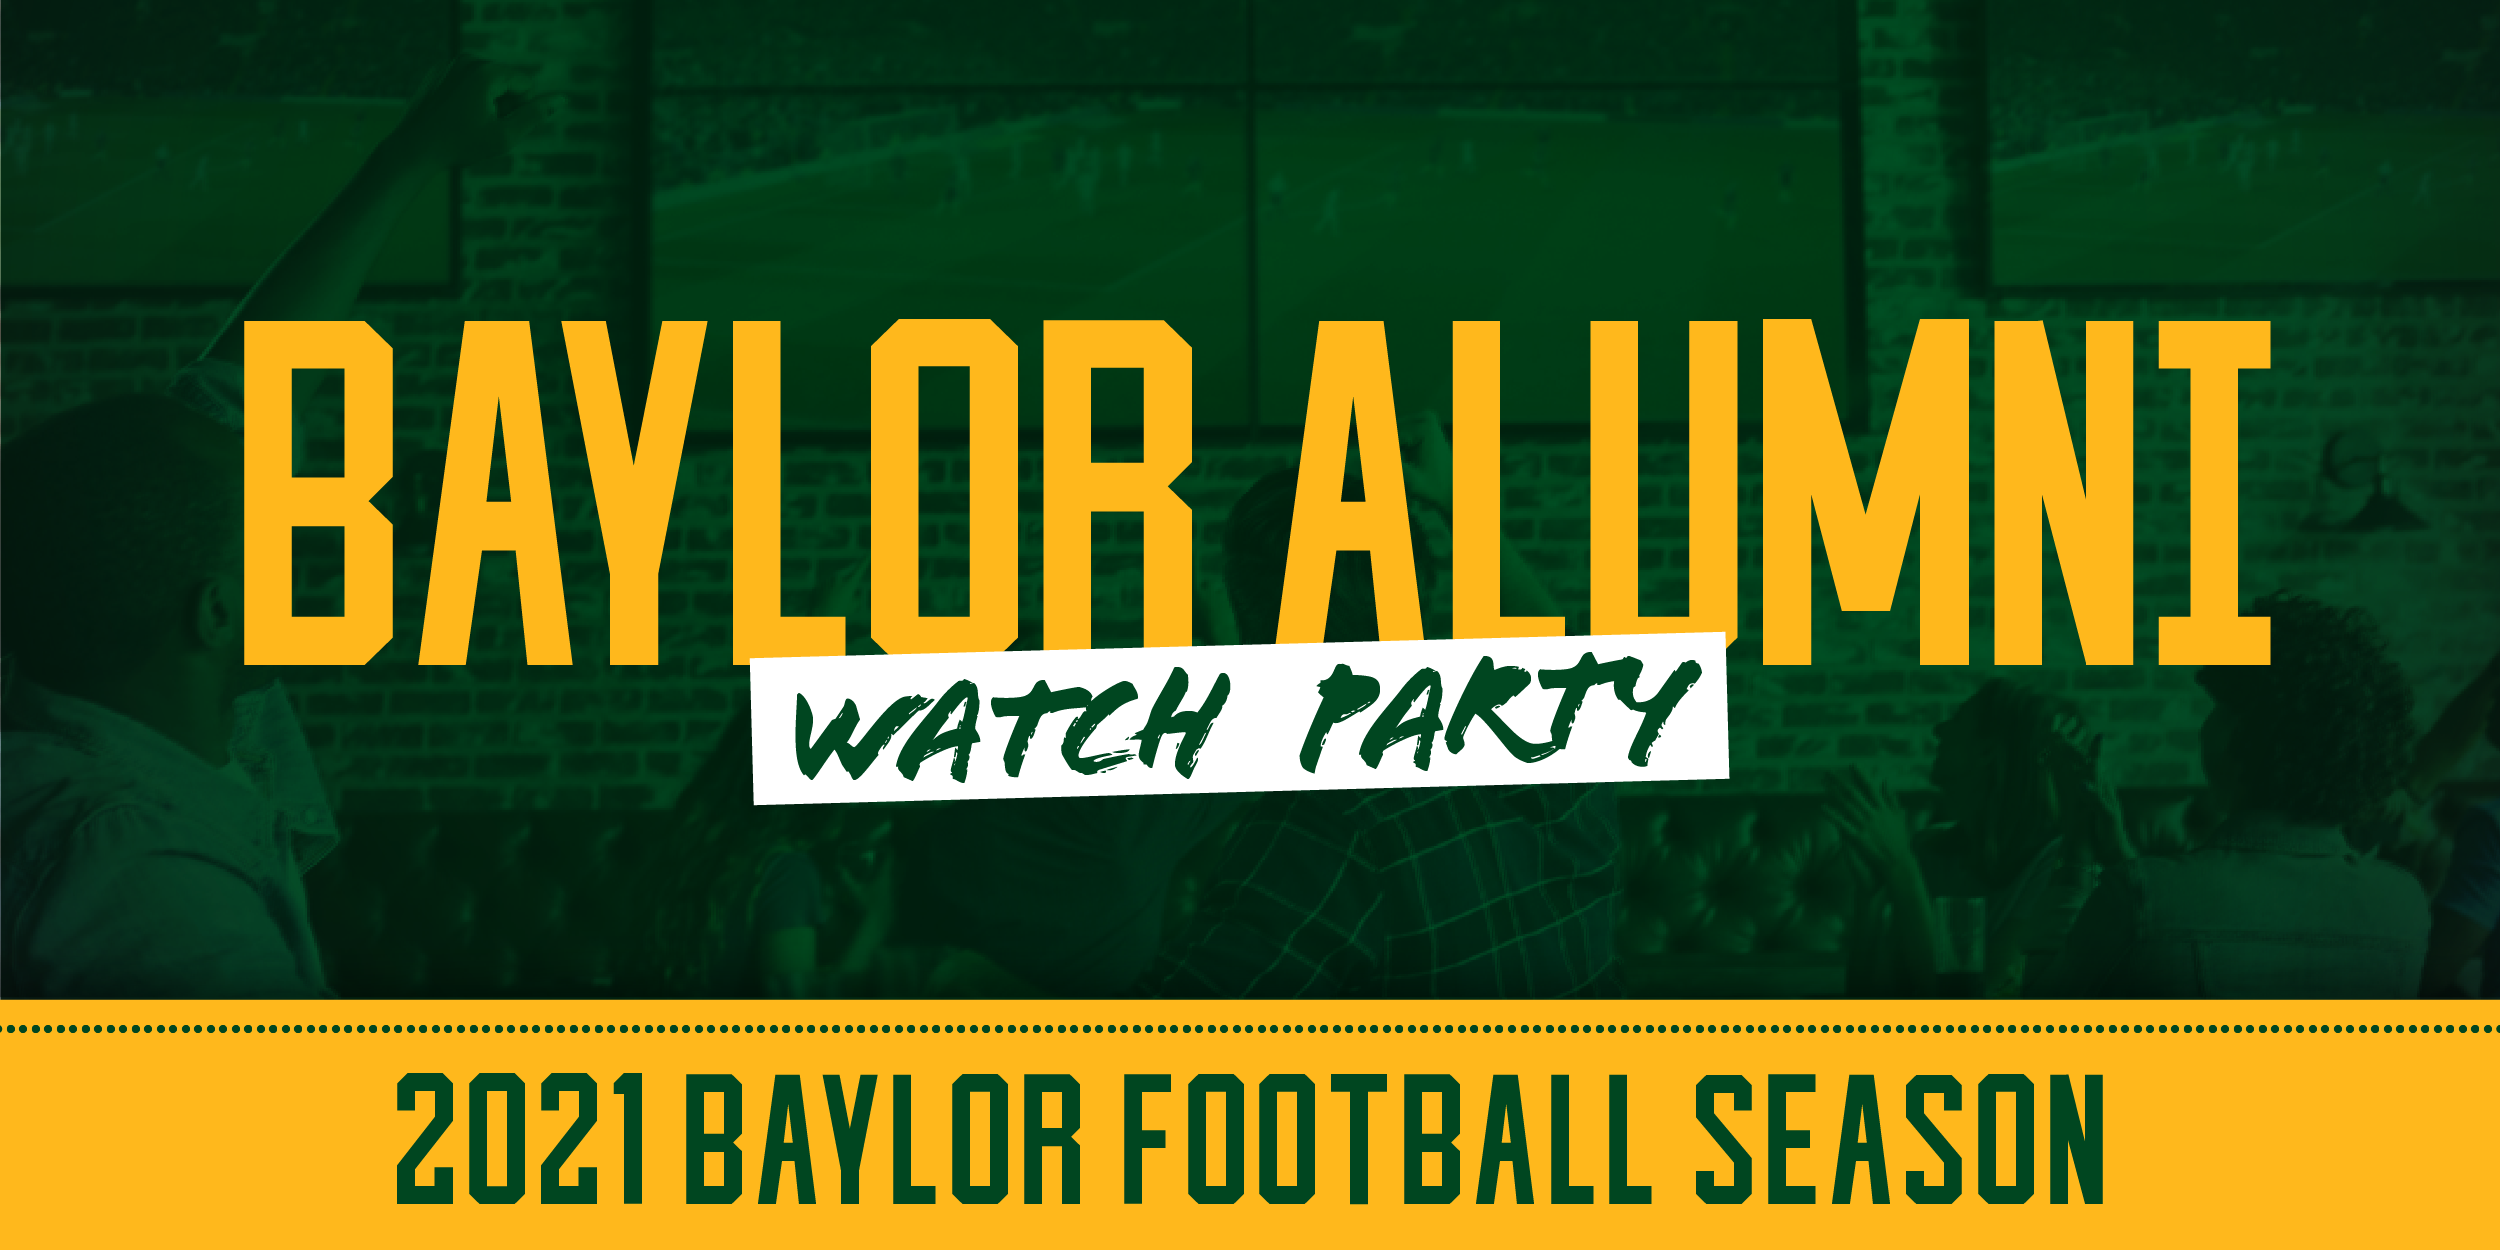 Baylor Alumni of Chicago Watch Party